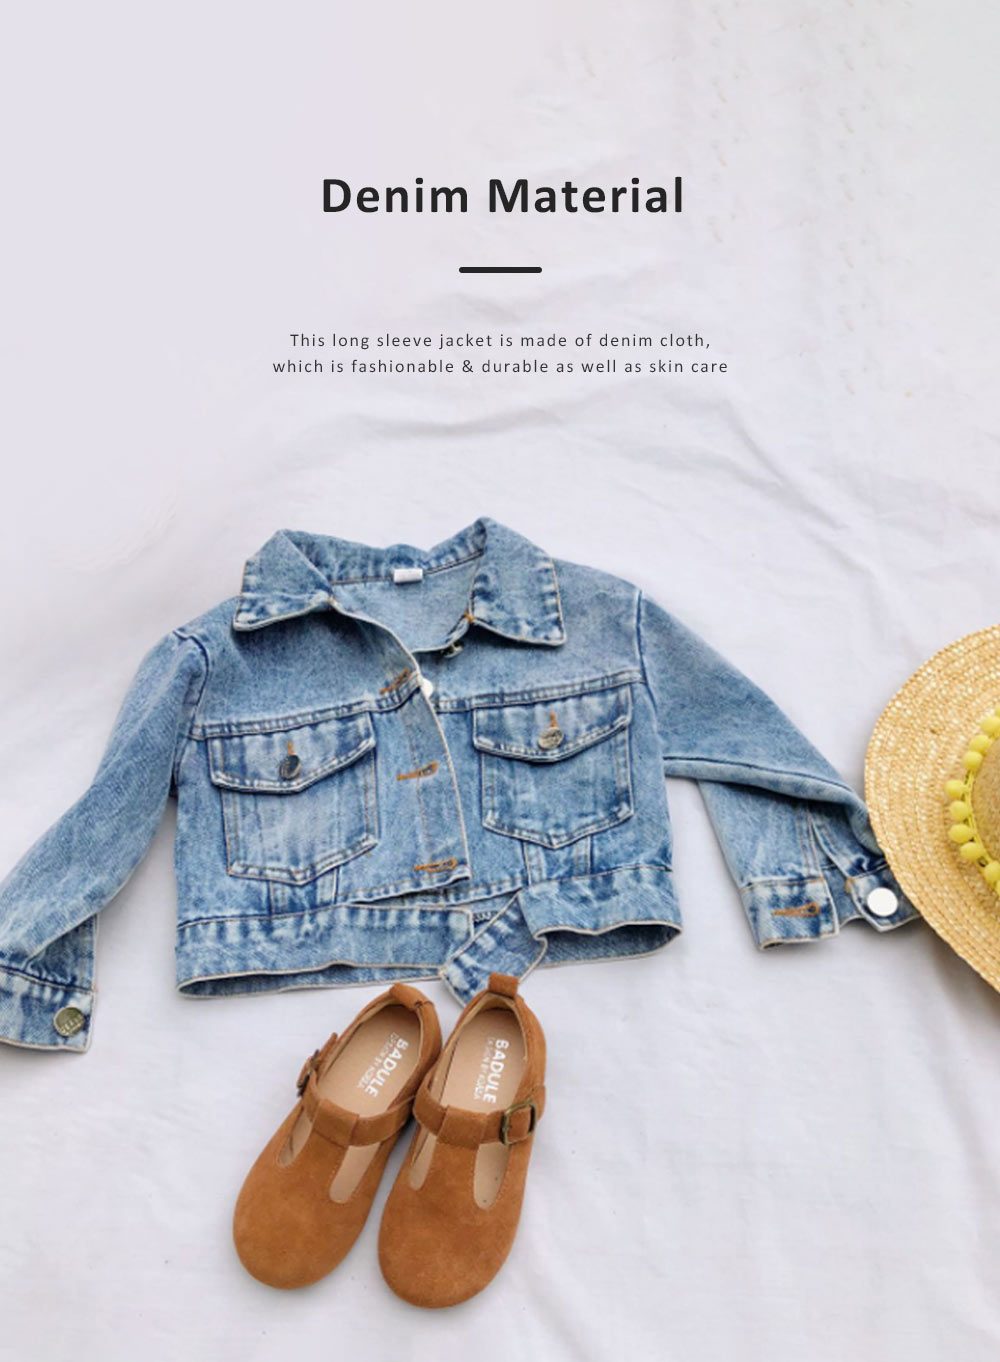 Classic style Denim Jacket Long Sleeve Clothes Fashionable Children Garment with Two Pockets for Girls 2